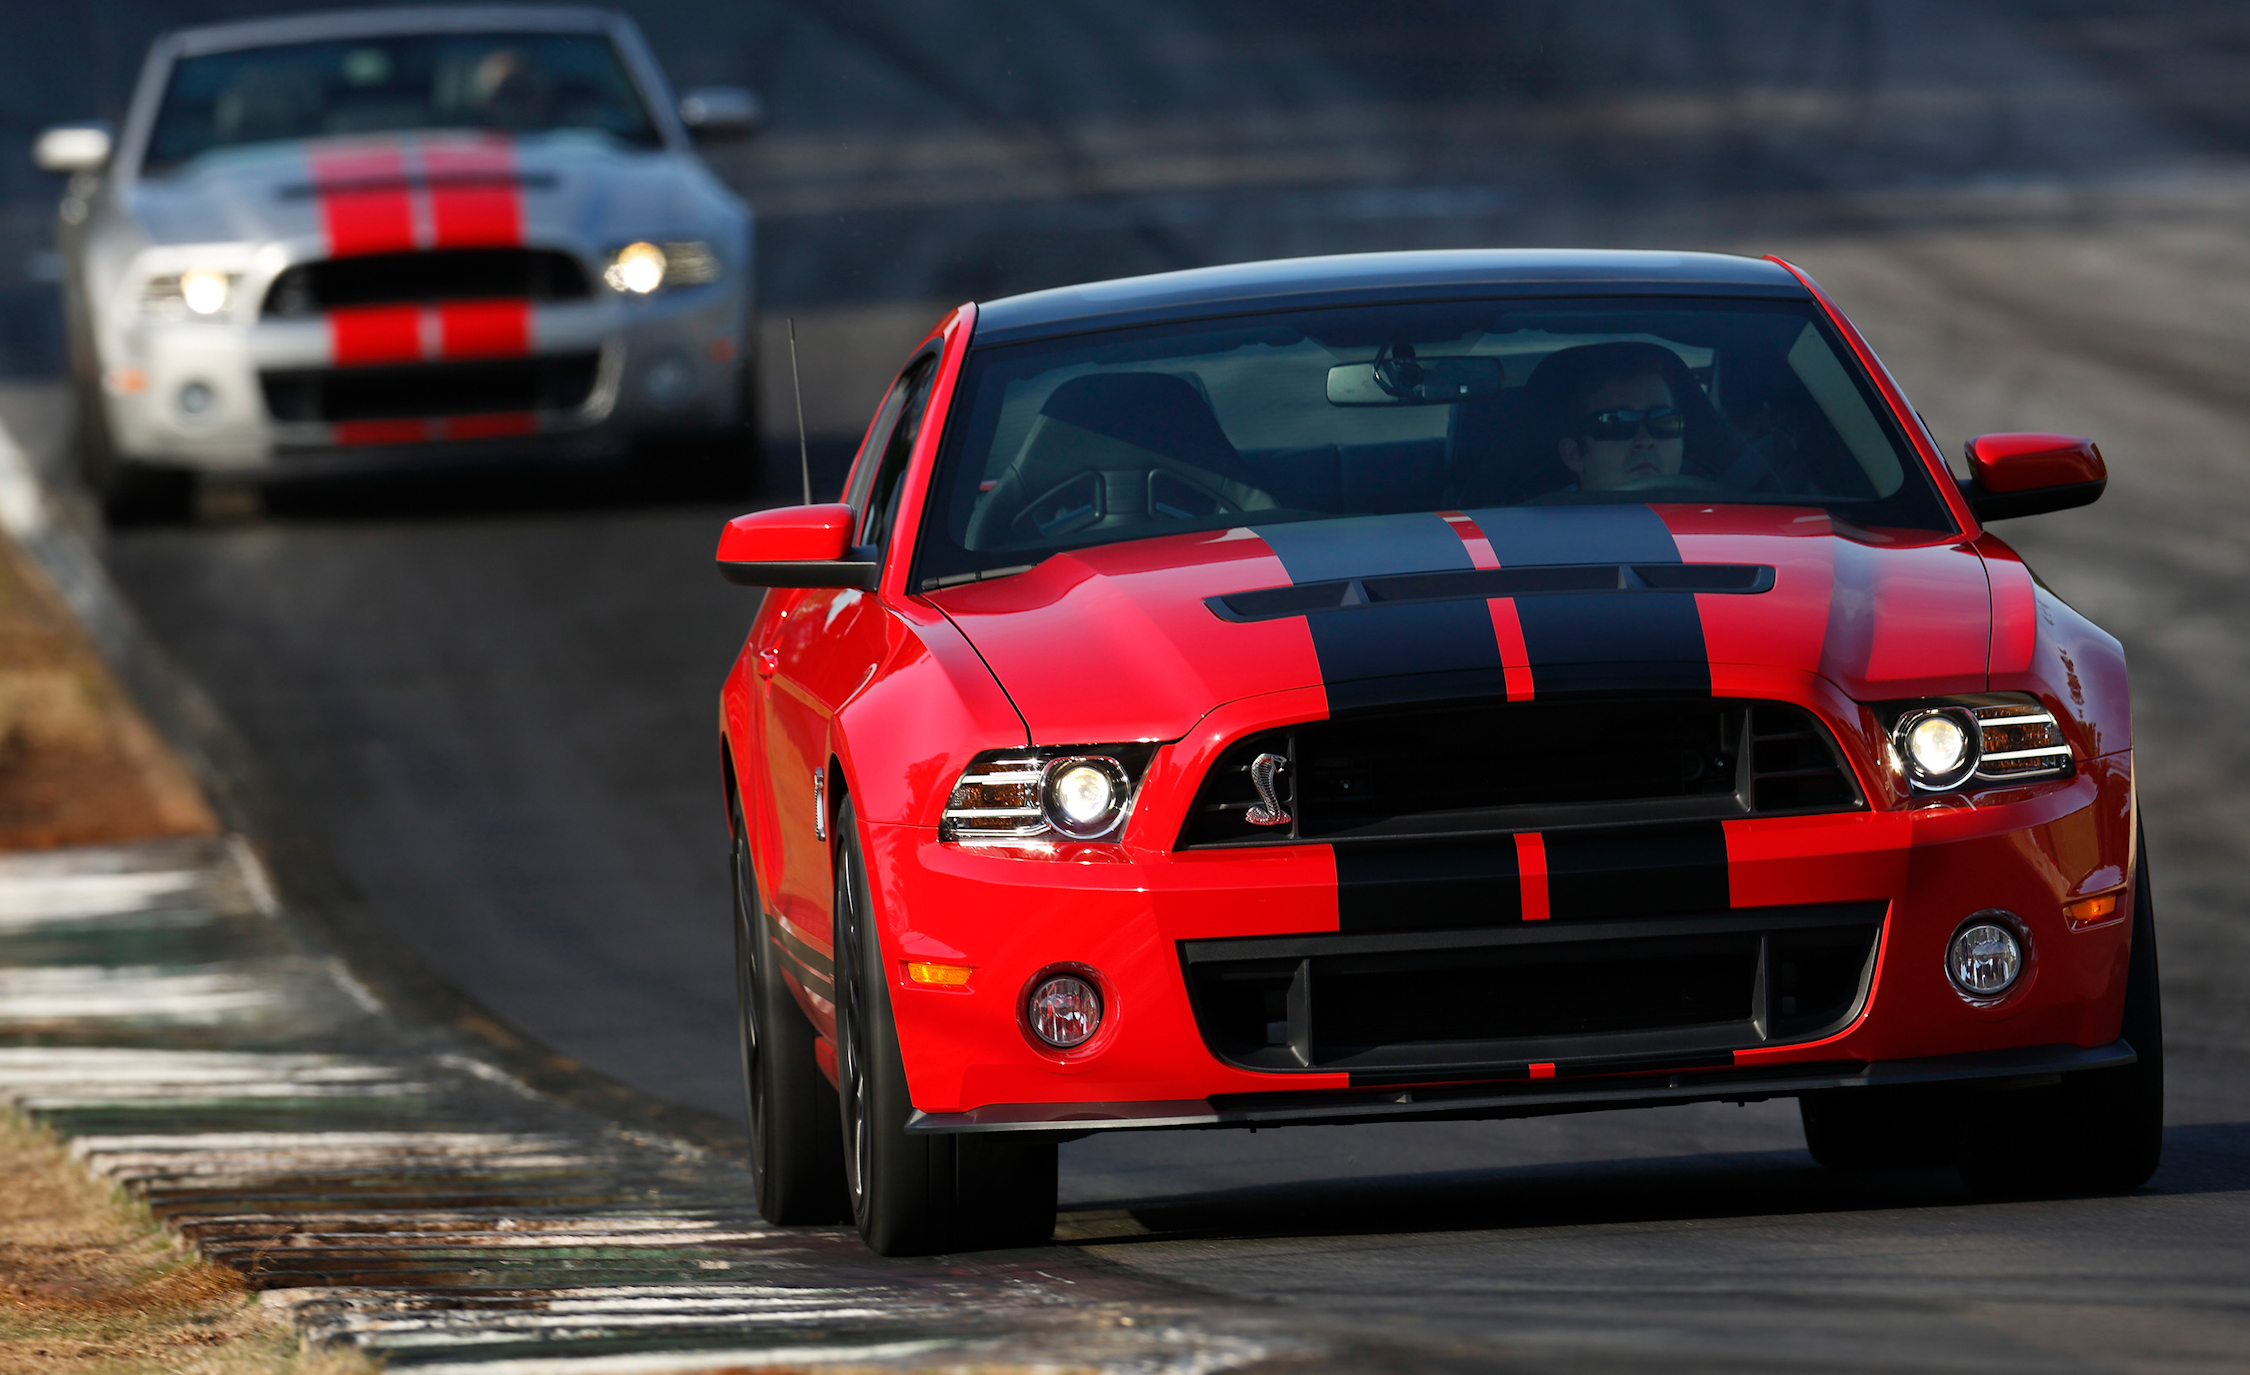 2013 Ford Mustang Shelby GT500 Red Exterior Front (Photo 29 of 47)